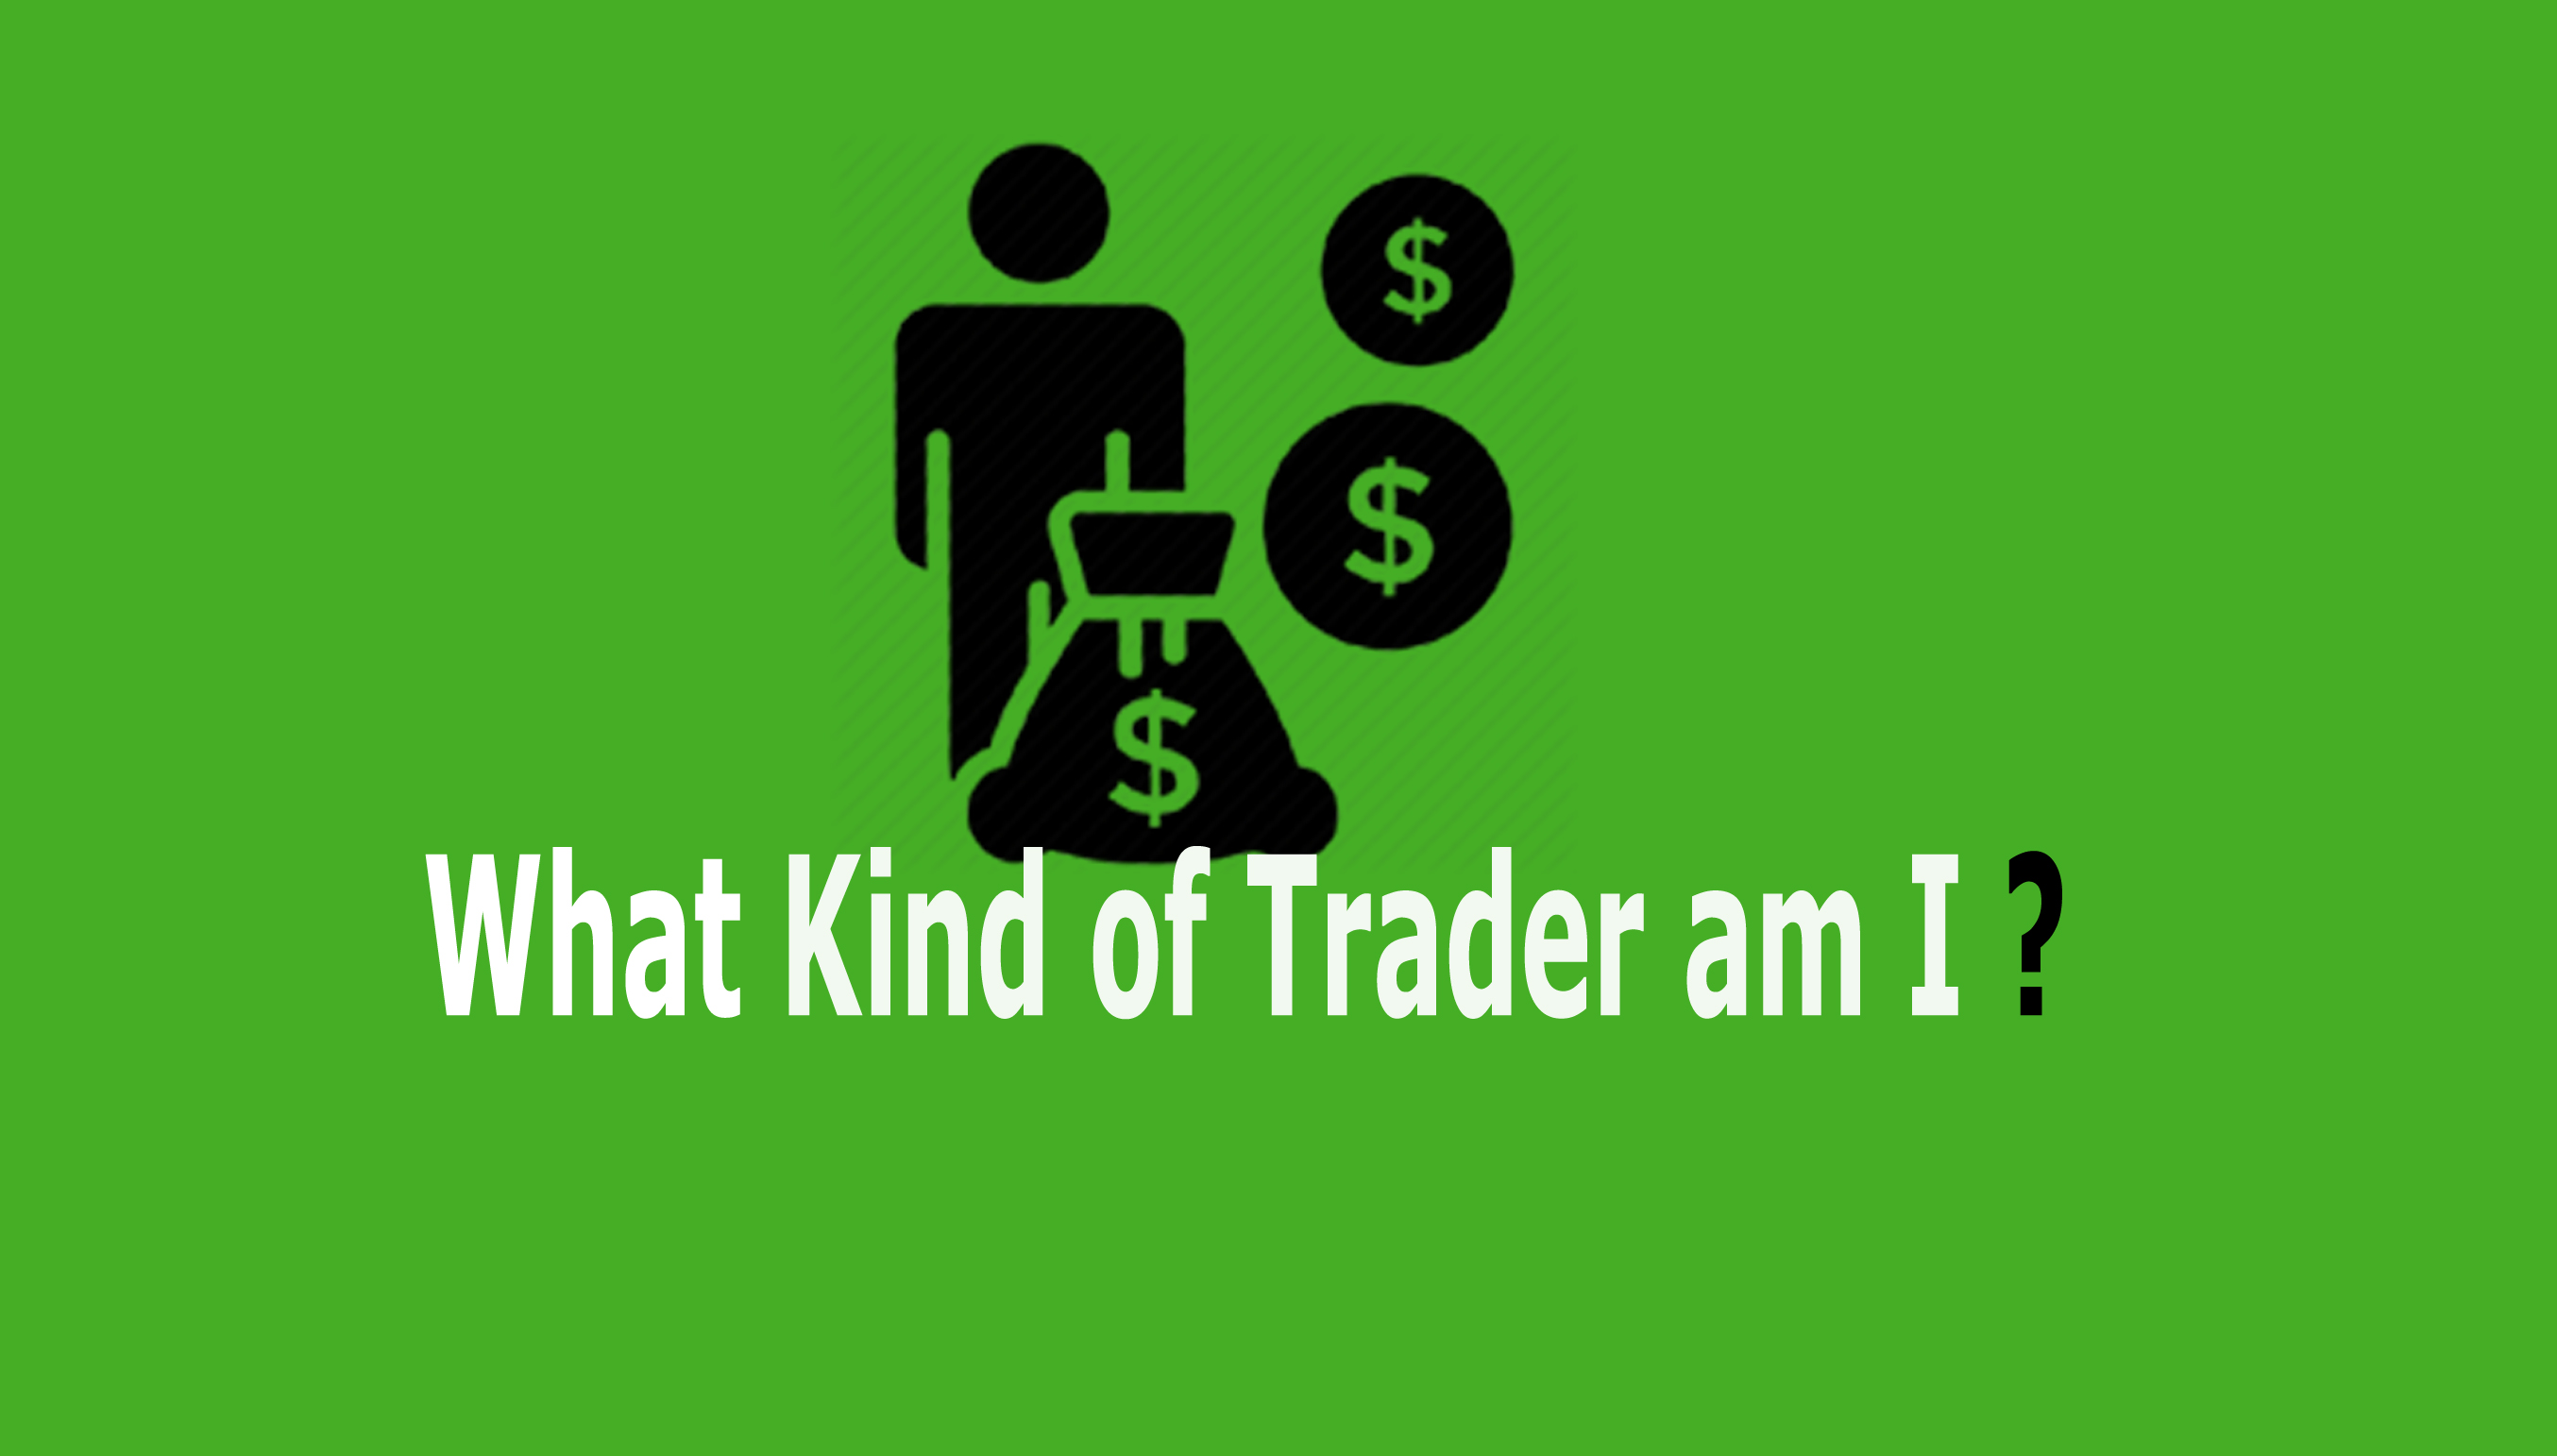 WHAT KIND OF TRADER AM I